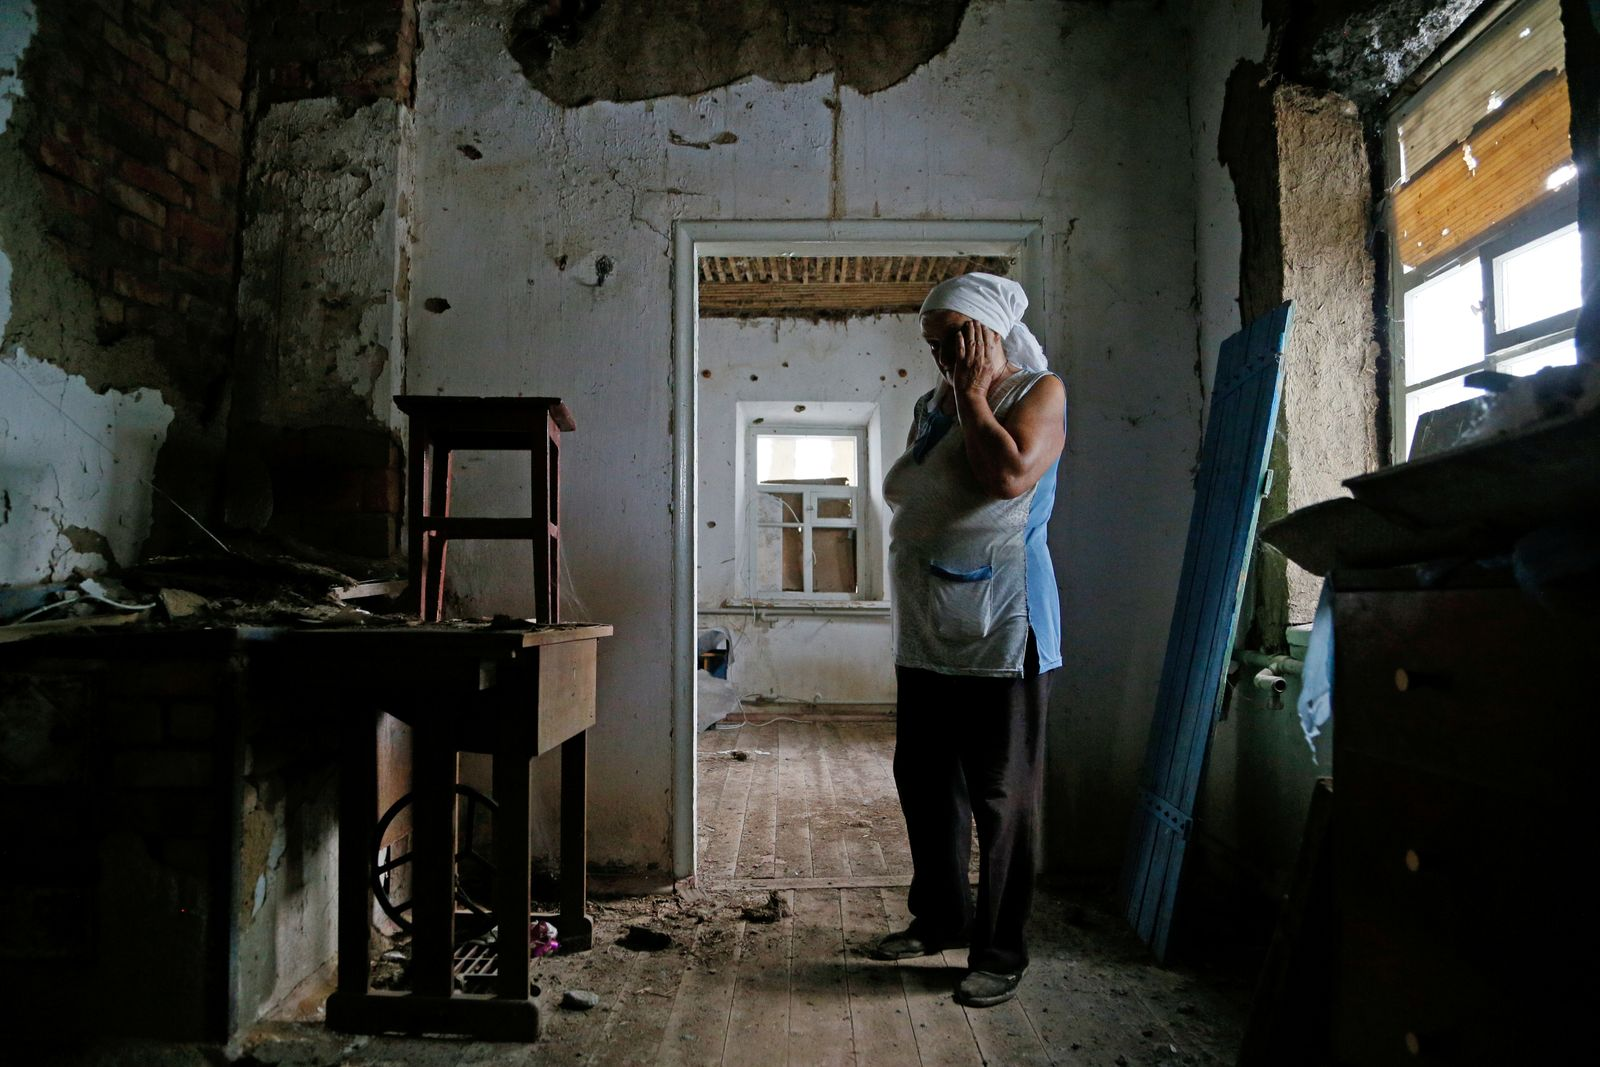 Local resident Katerina Izvekova shows her house damaged during a military conflict in Vesele